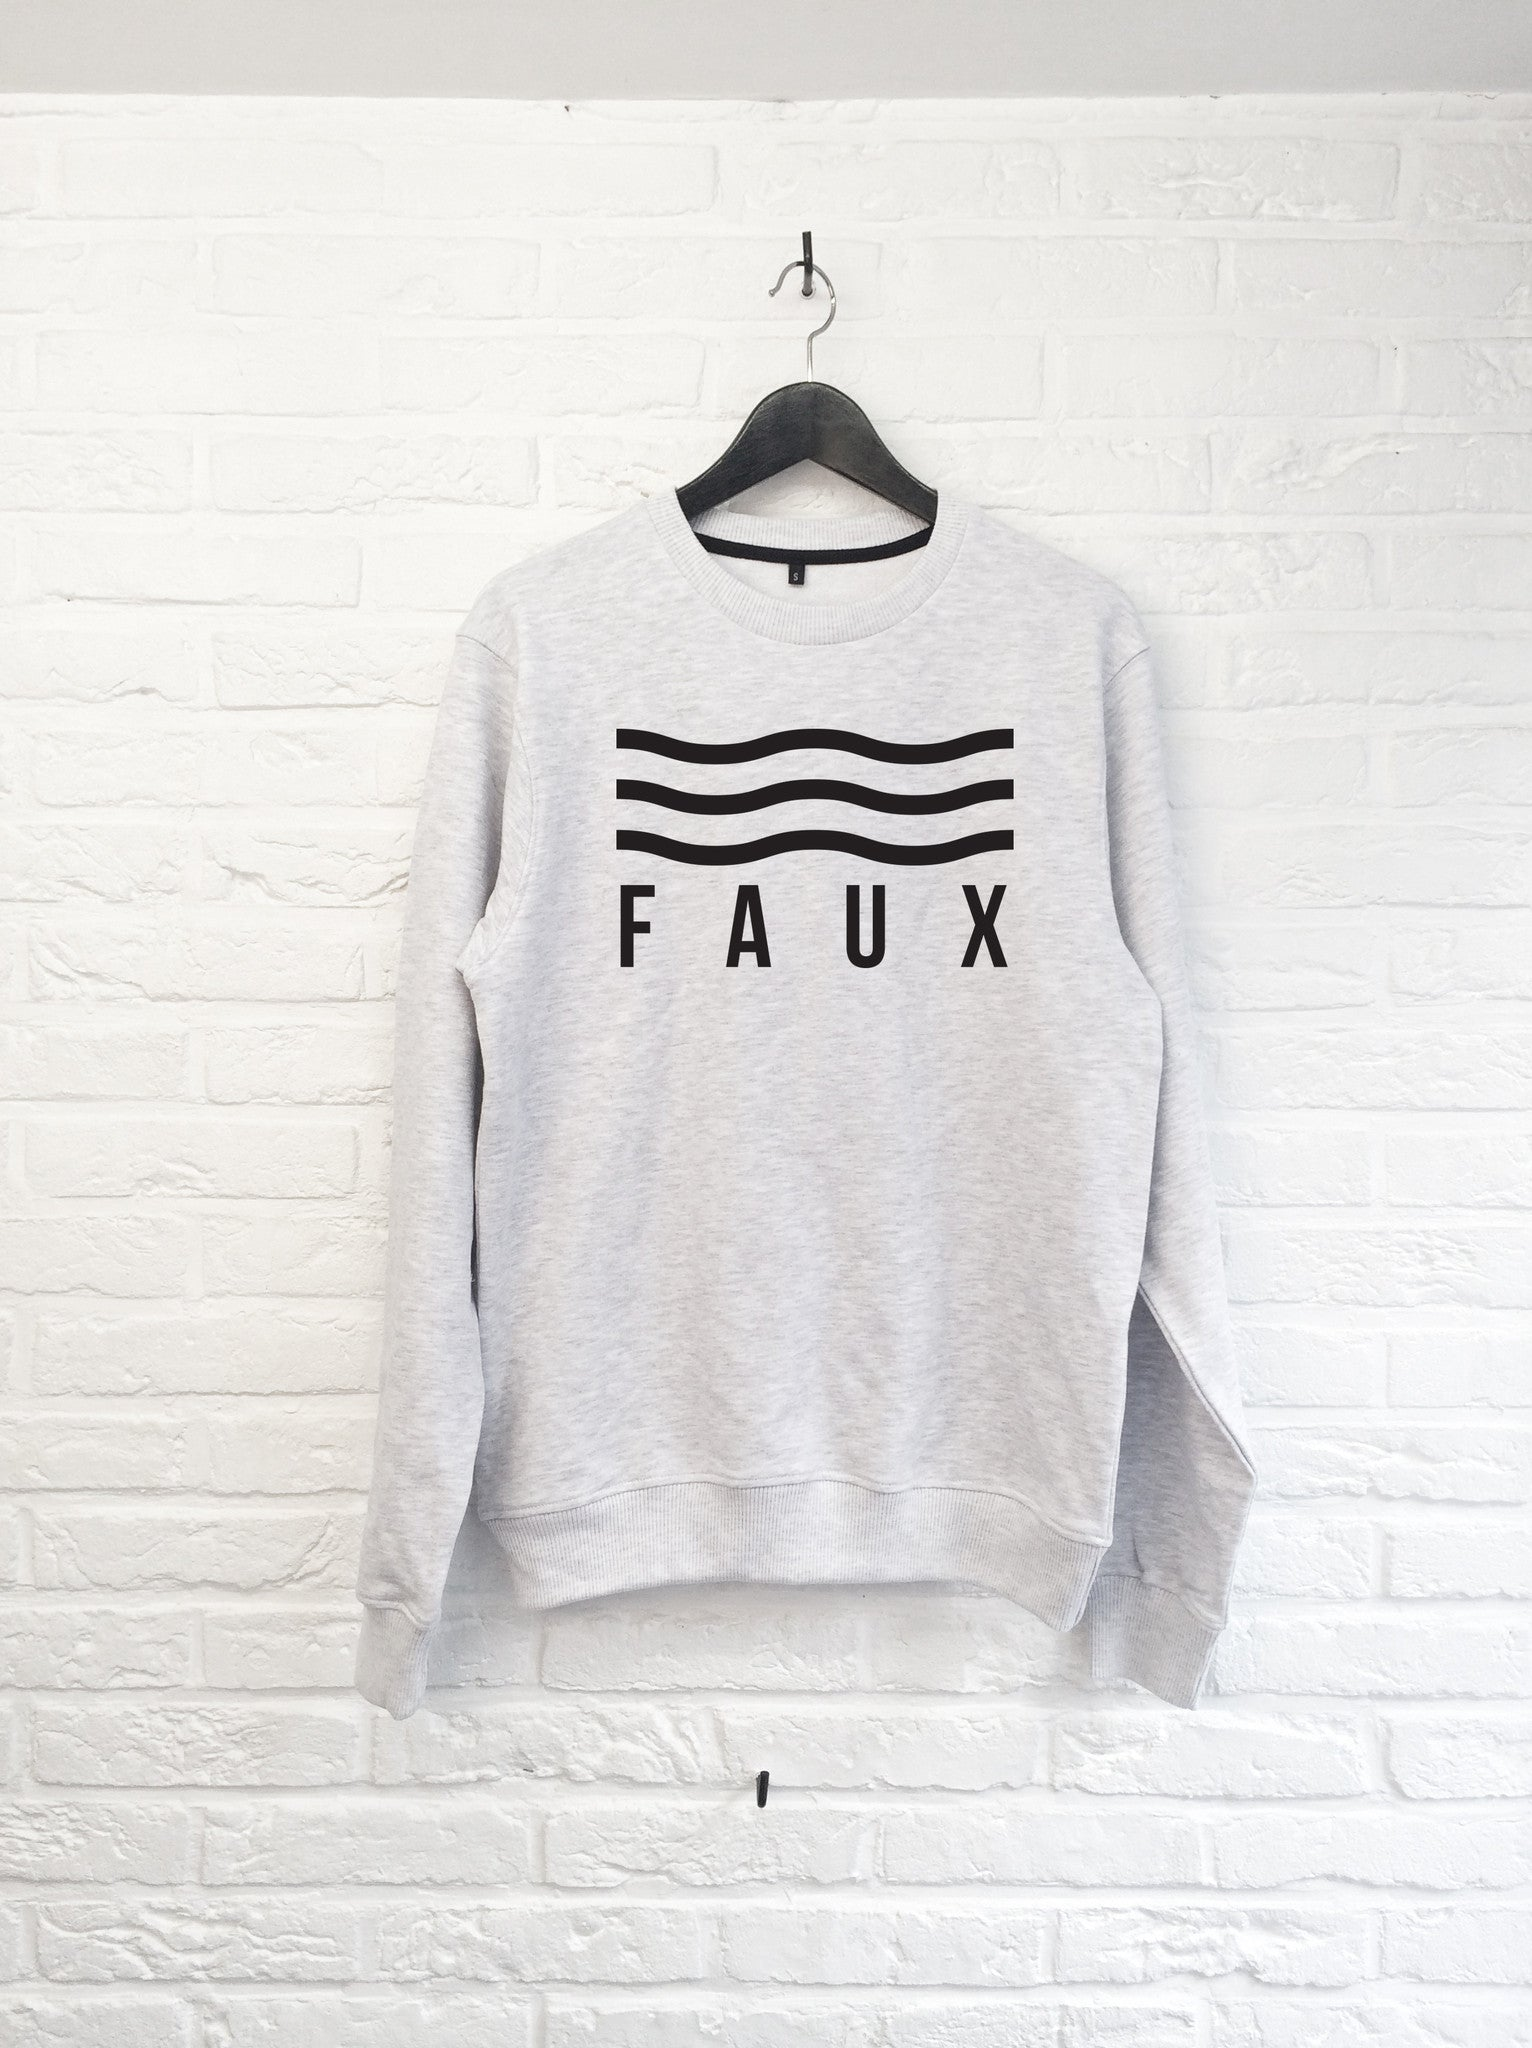 FAUX Vague - Sweat-Sweat shirts-Atelier Amelot